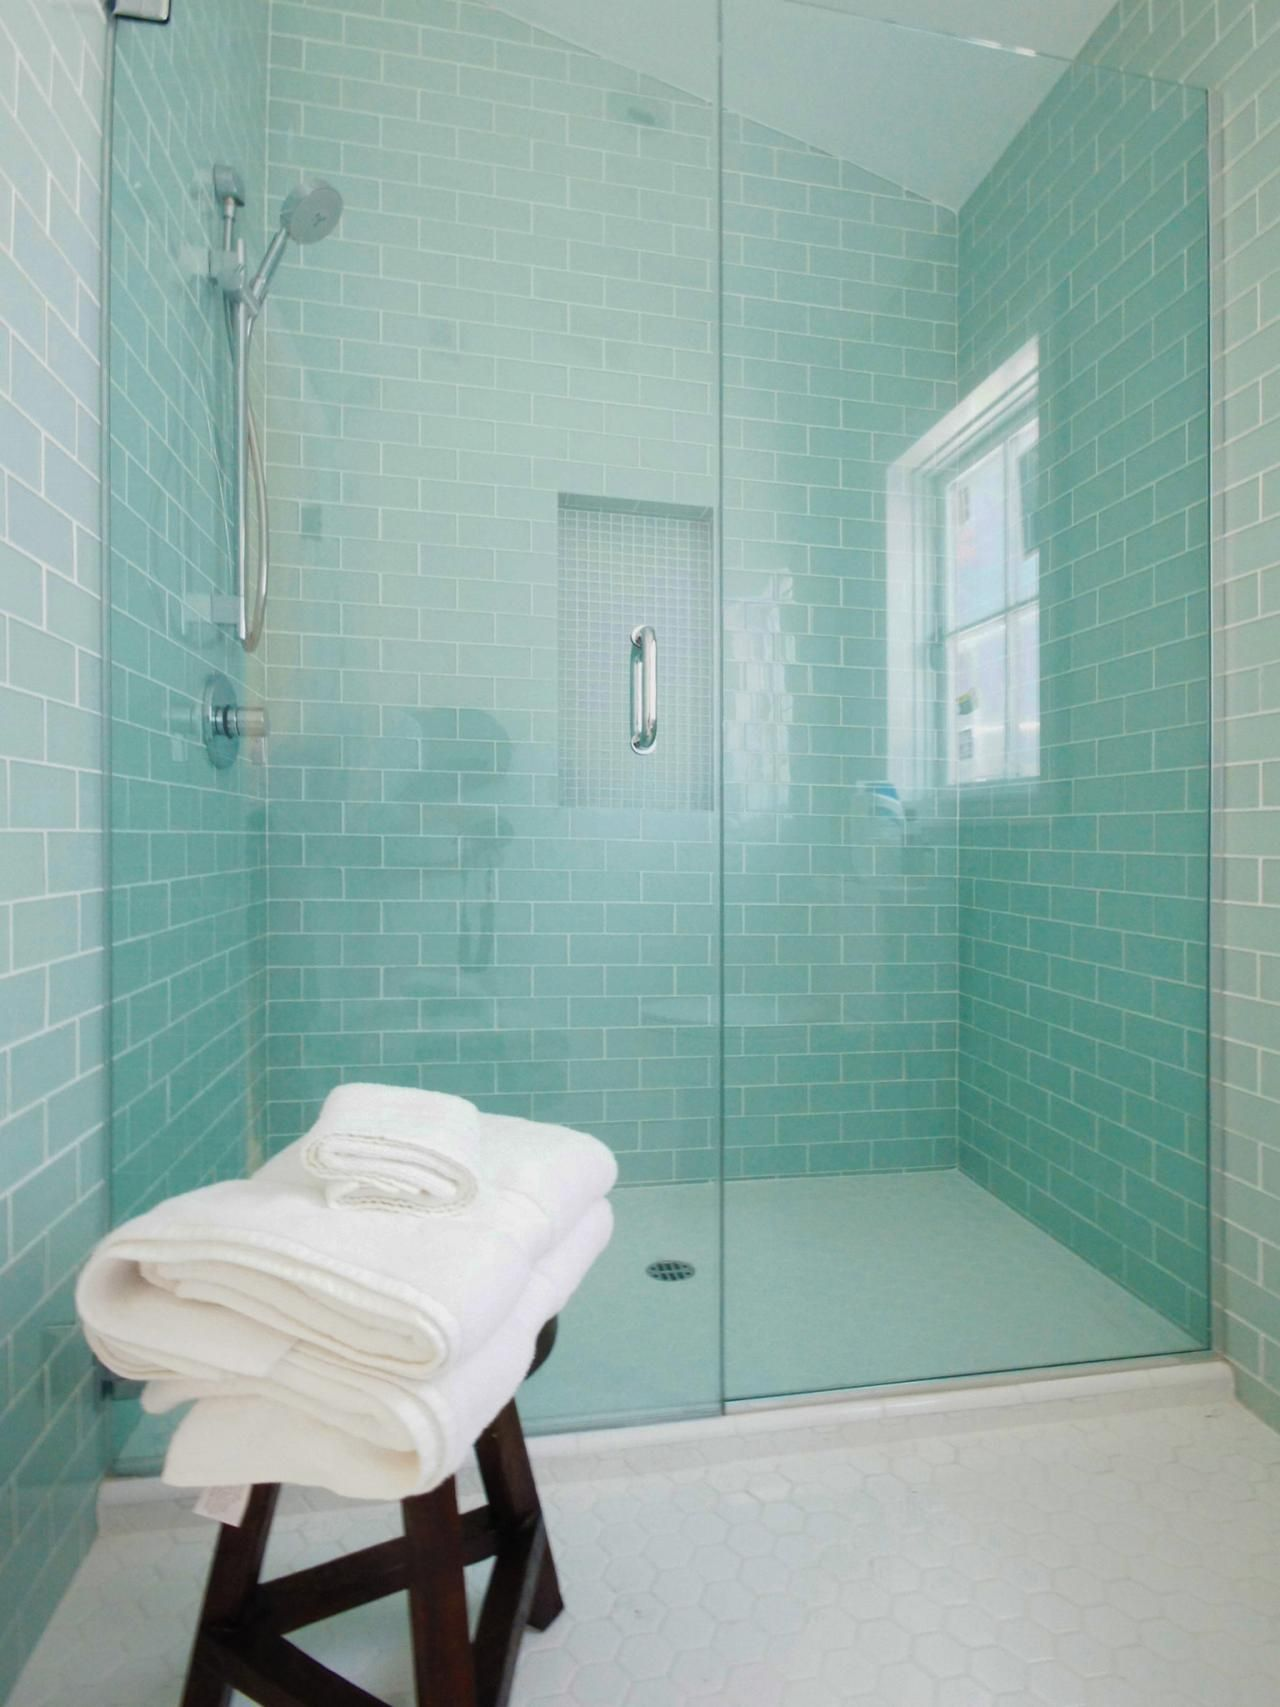 Mint colored subway wall tiles create a serene setting in this the frameless glass shower door adds a modern touch while the white porcelain hexagonal floor tile doublecrazyfo Gallery